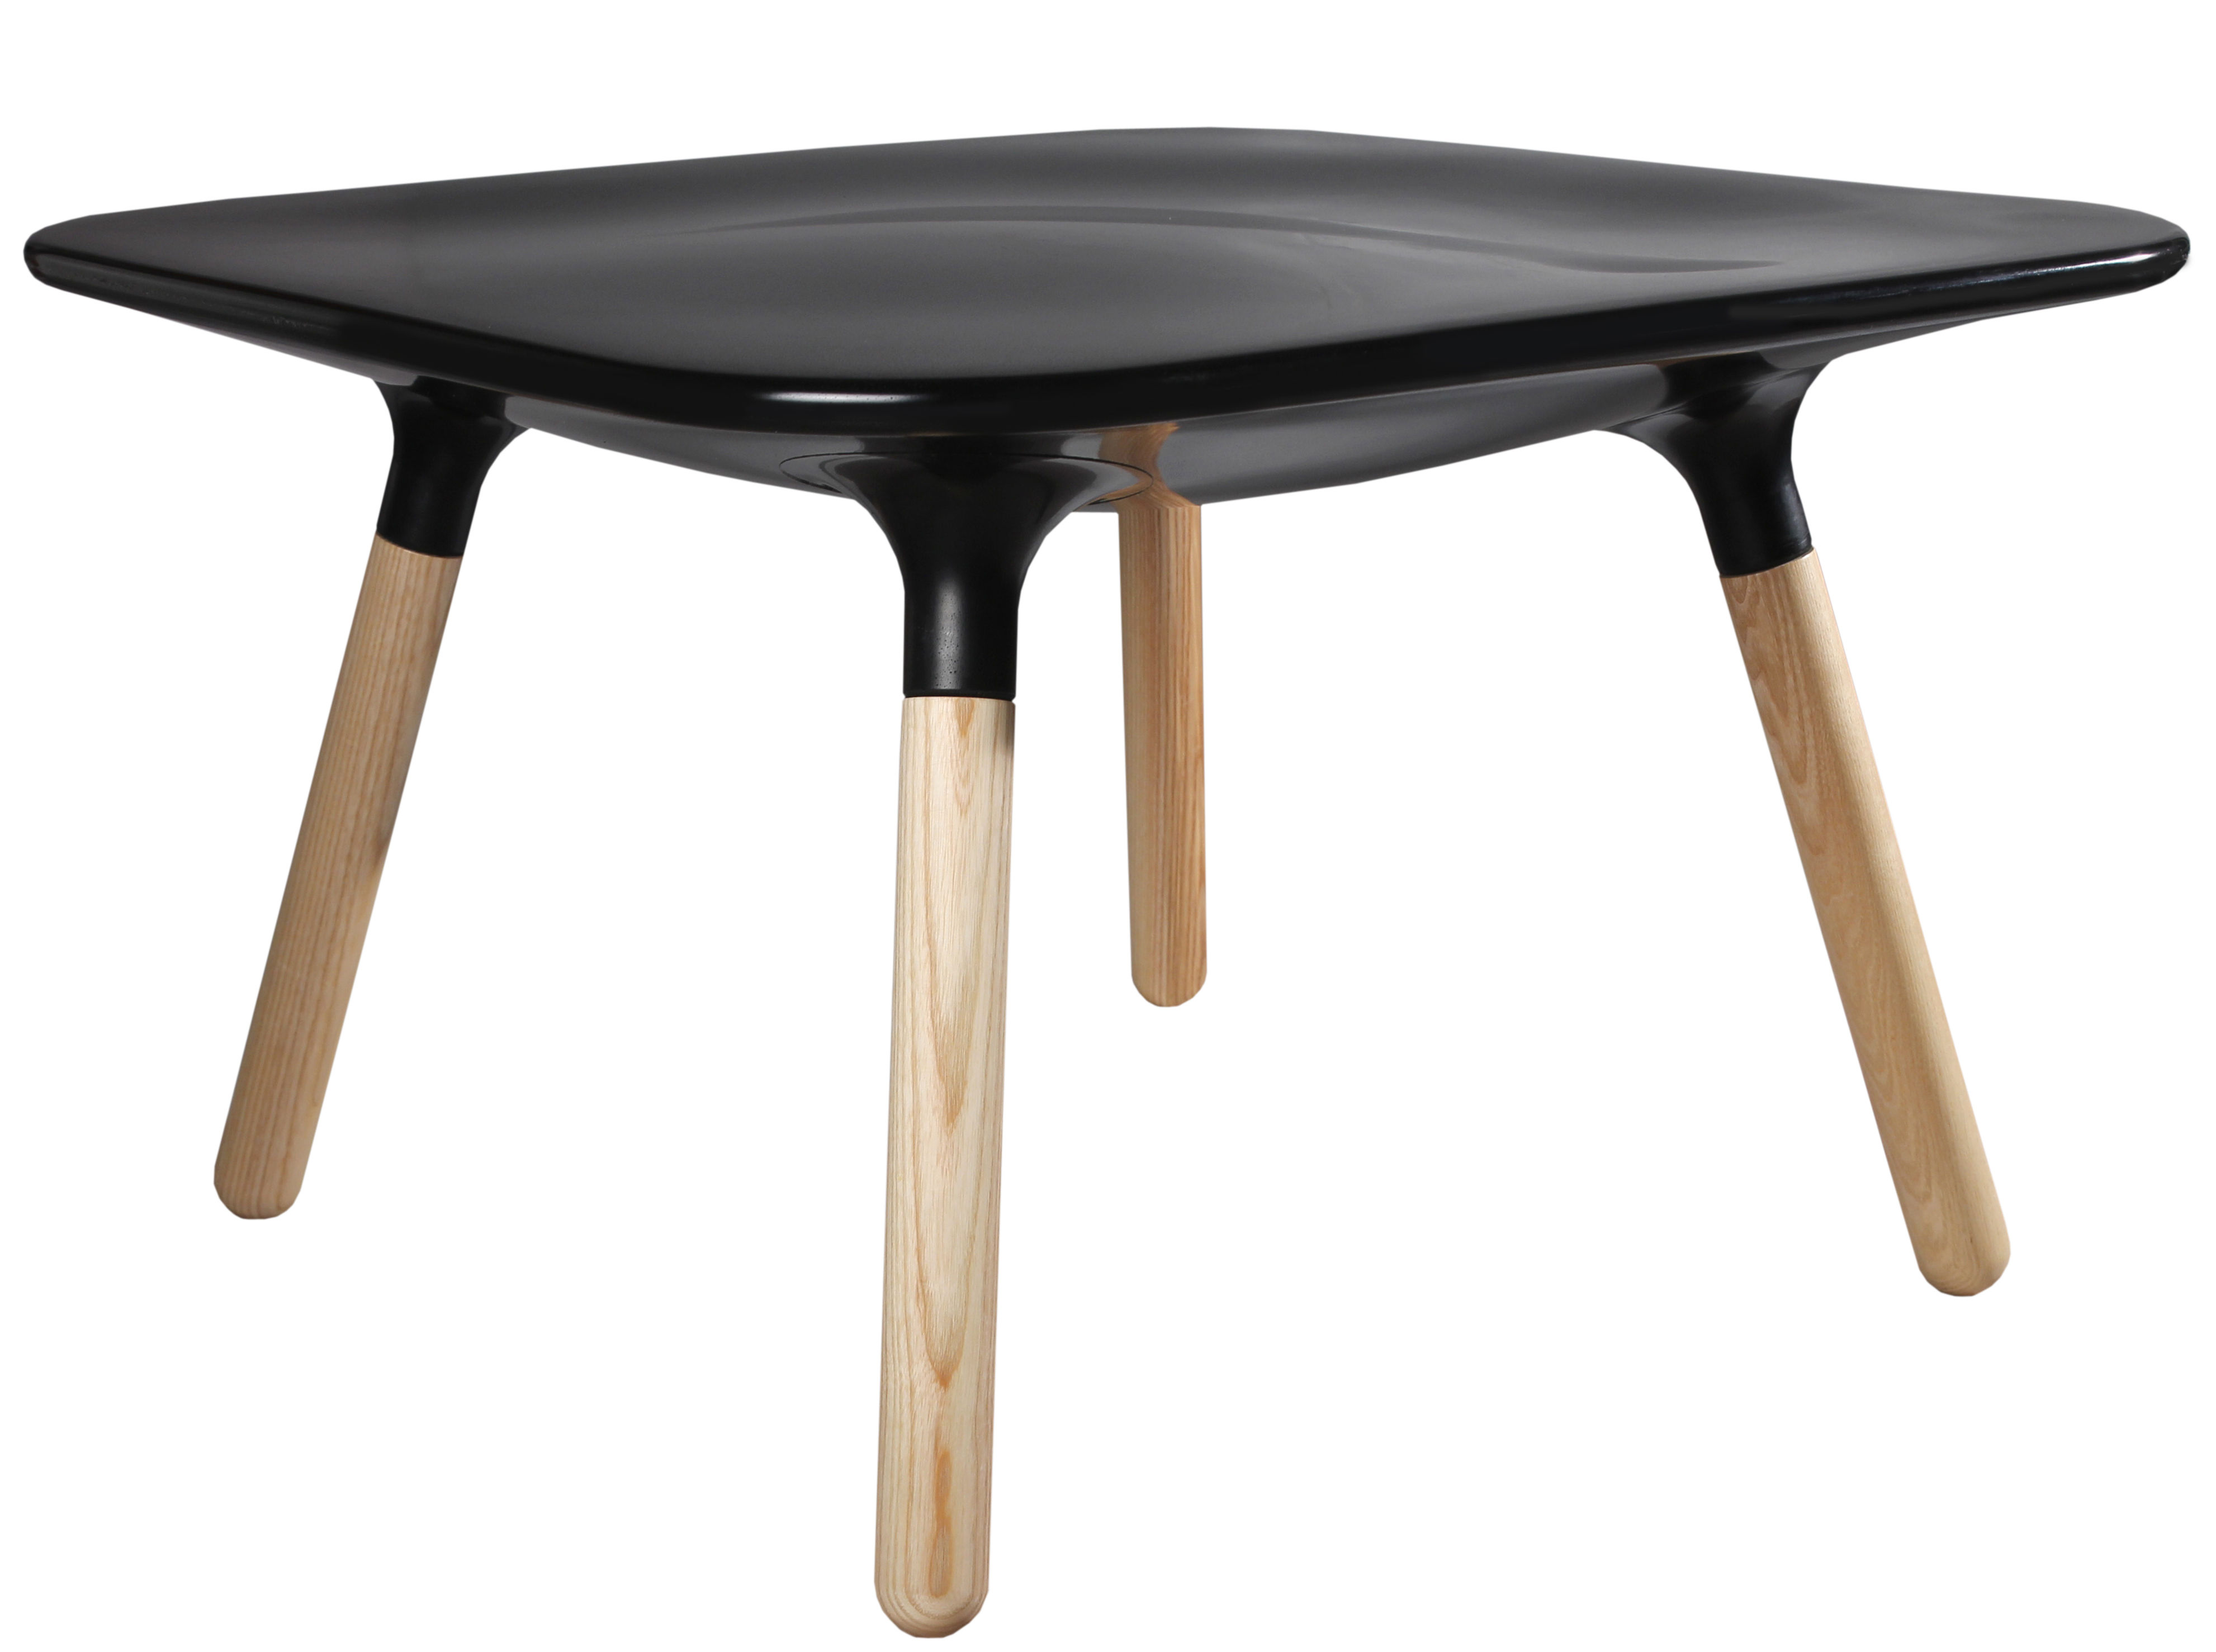 Mobilier - Tables basses - Table basse Marguerite / H 45 cm - Stamp Edition - Noir - Frêne, Matériau composite